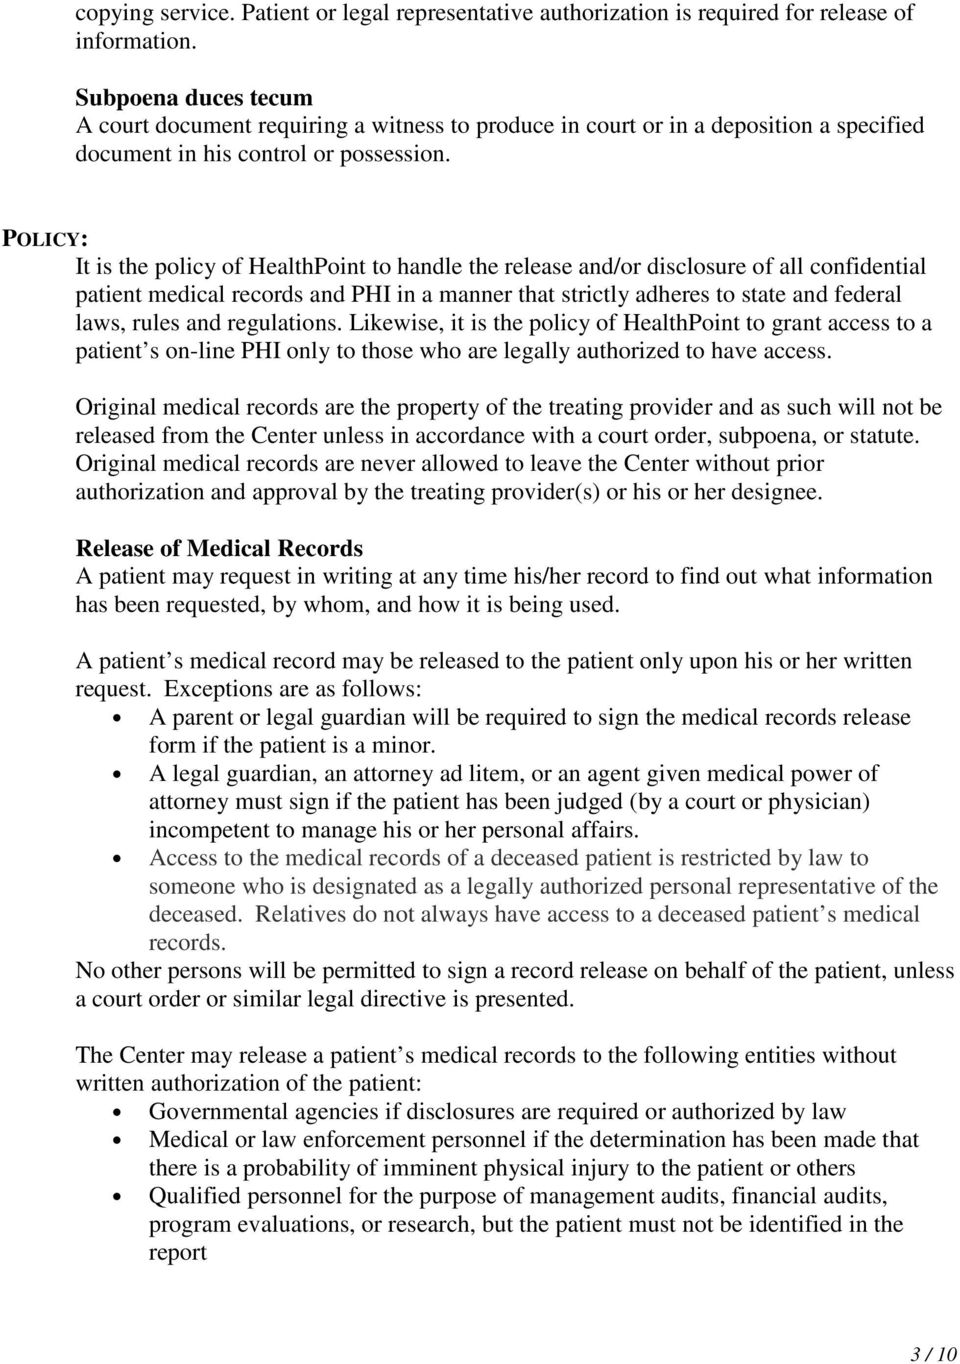 POLICY: It is the policy of HealthPoint to handle the release and/or disclosure of all confidential patient medical records and PHI in a manner that strictly adheres to state and federal laws, rules